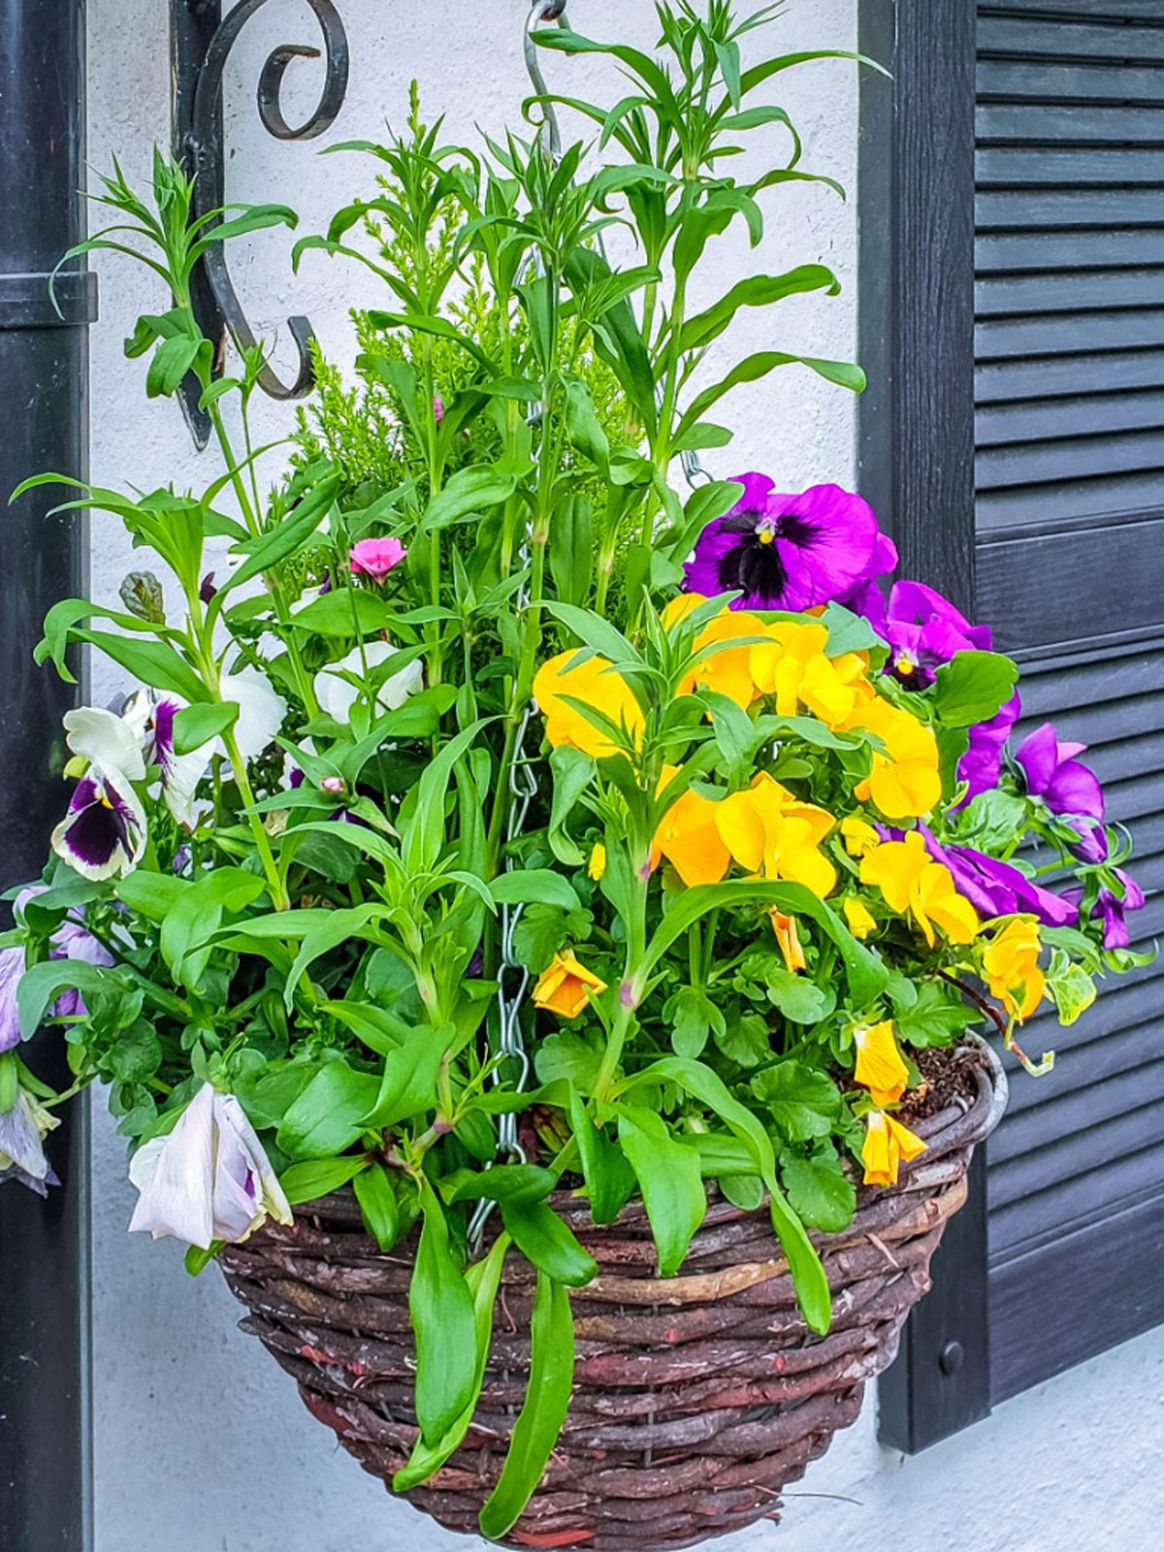 Hanging Basket Plants: Best Flowers For Hanging Baskets